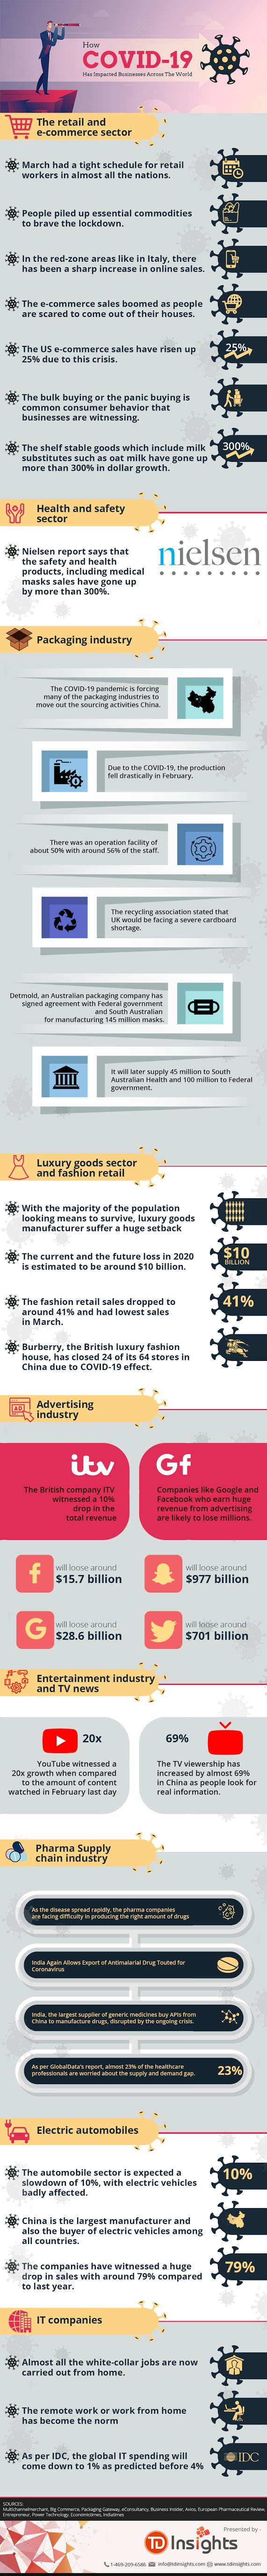 How COVID-19 Has Impacted Businesses Across The World #infographic